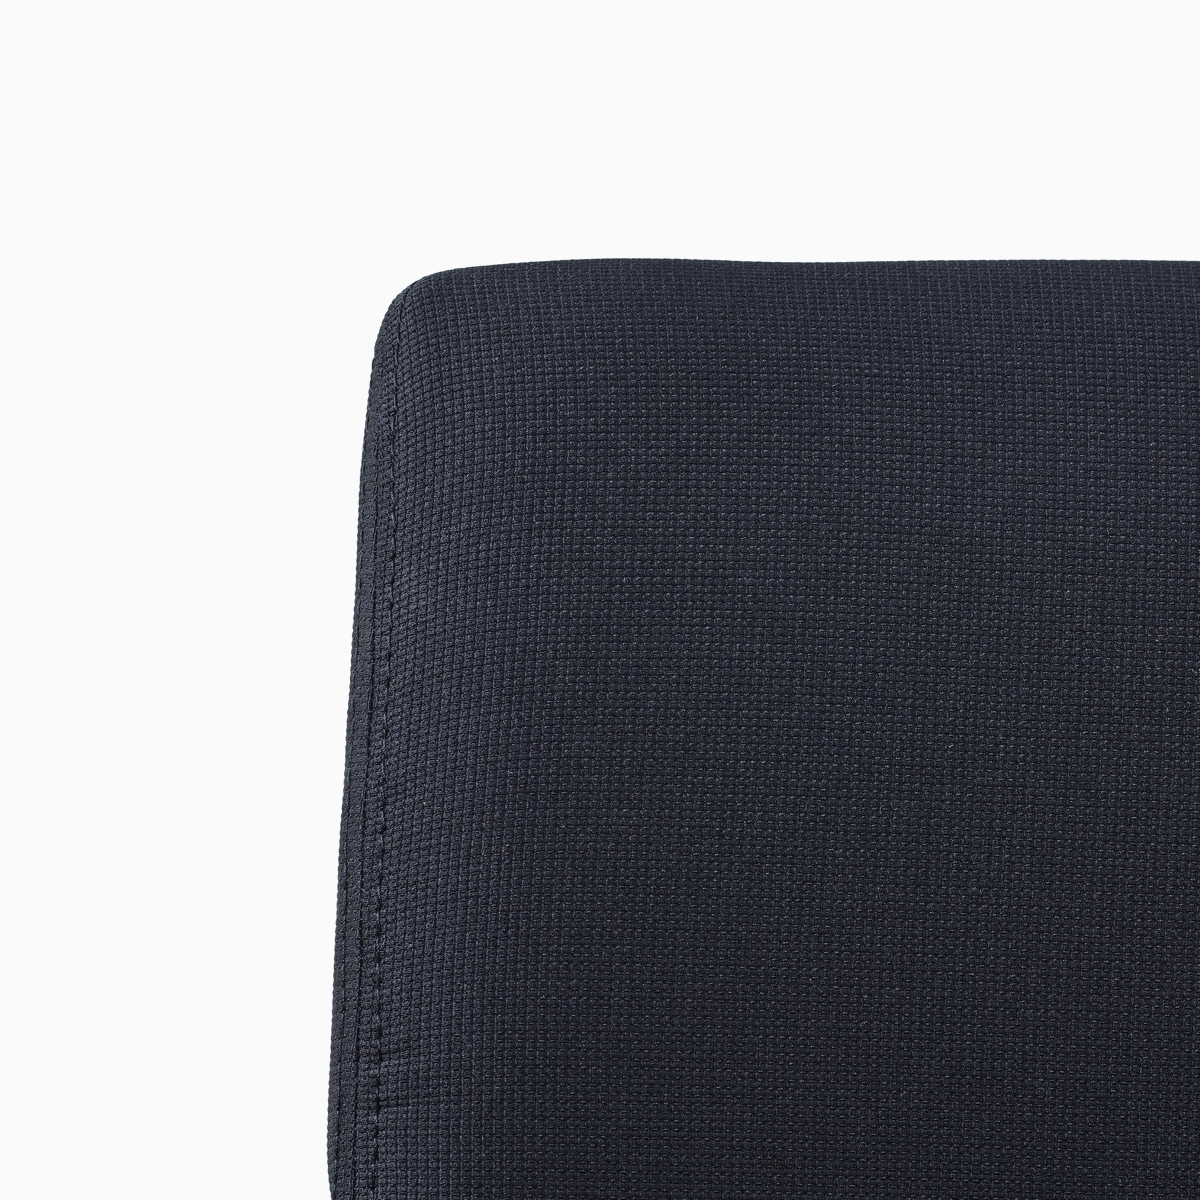 A close-up view of a black Verus Plus Chair upholstered back.